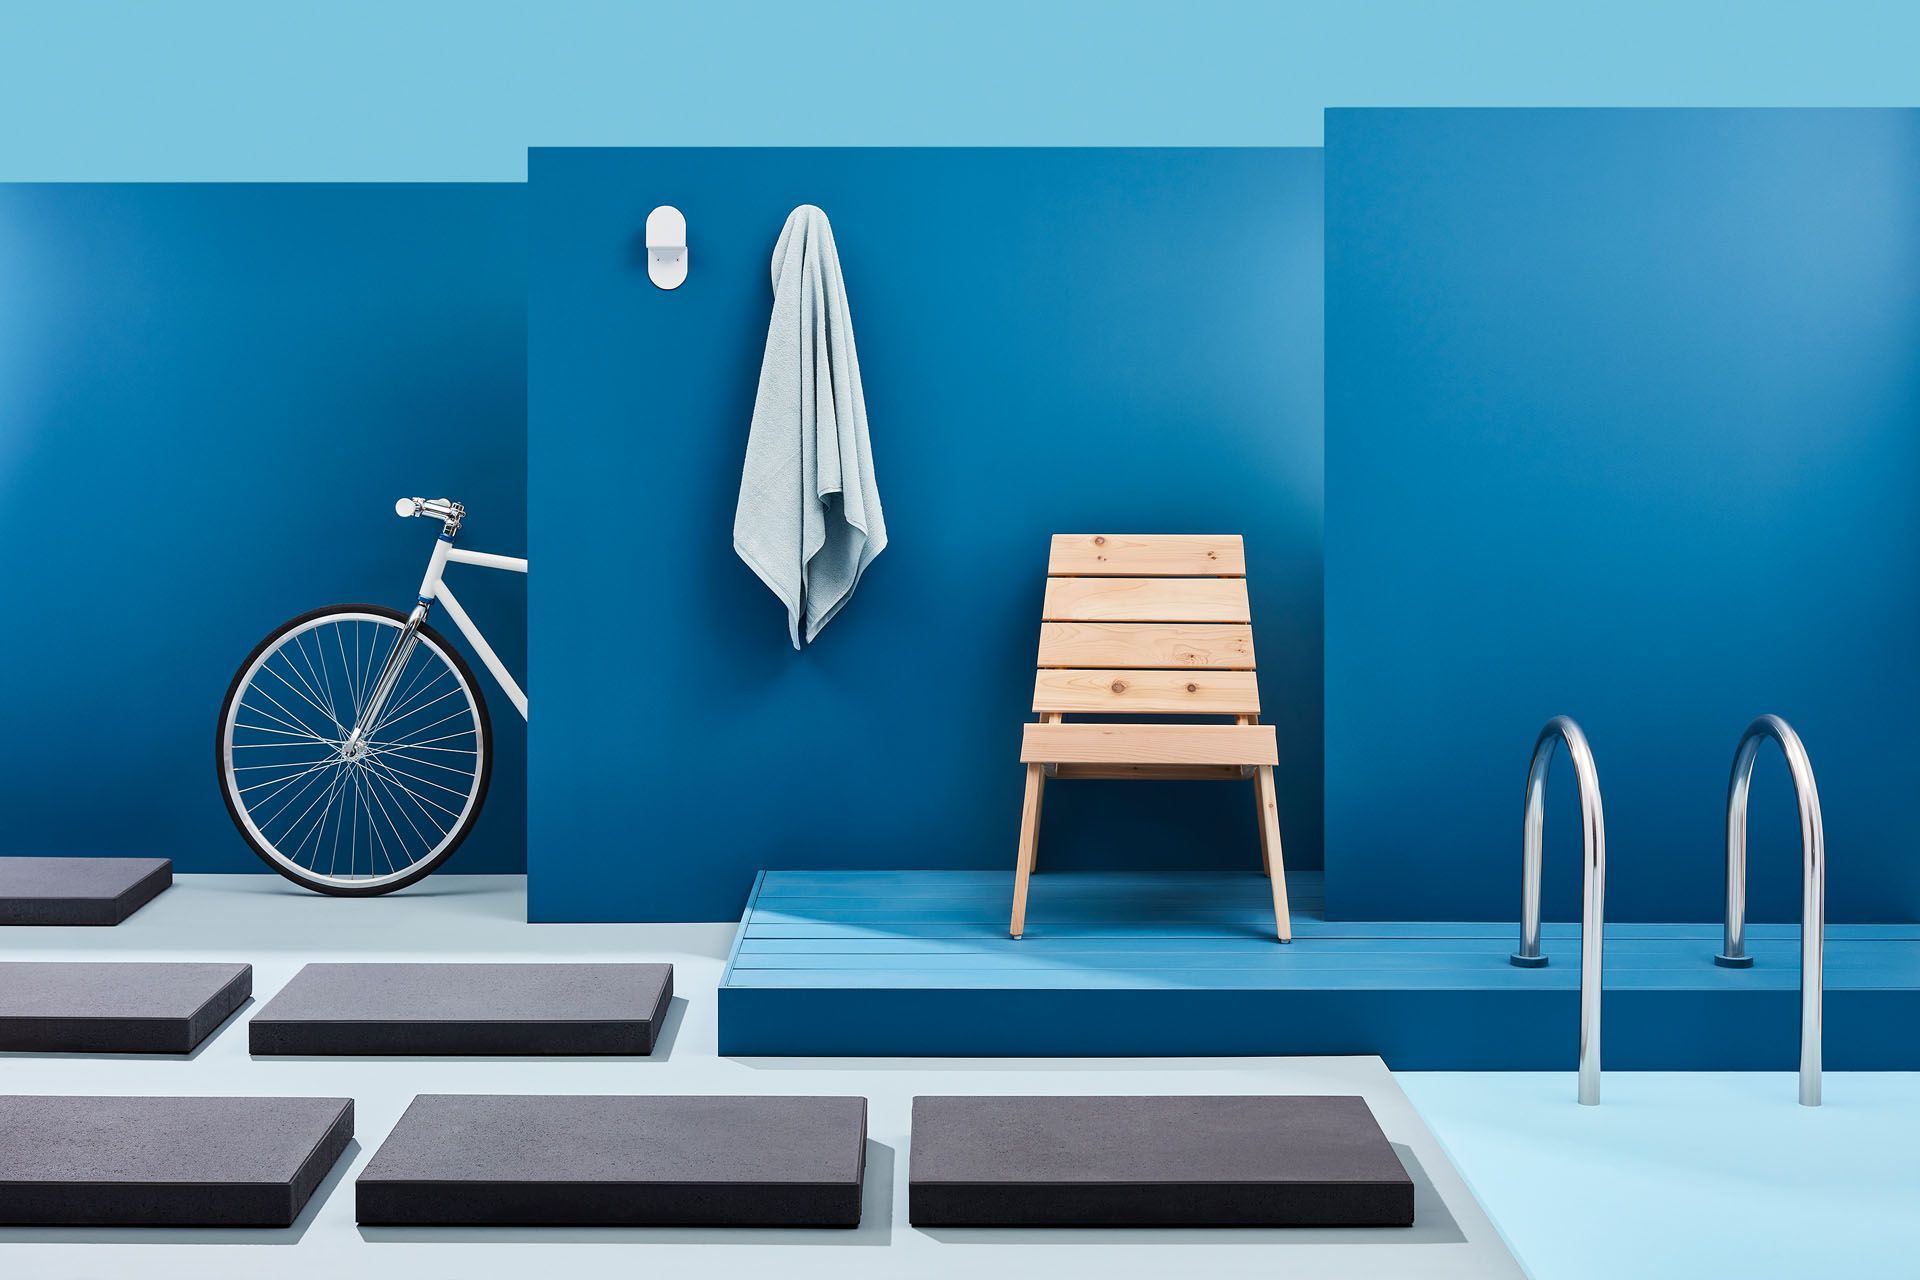 wooden chair on blue background at pool side by Mathieu Levesque for Techo Bloc